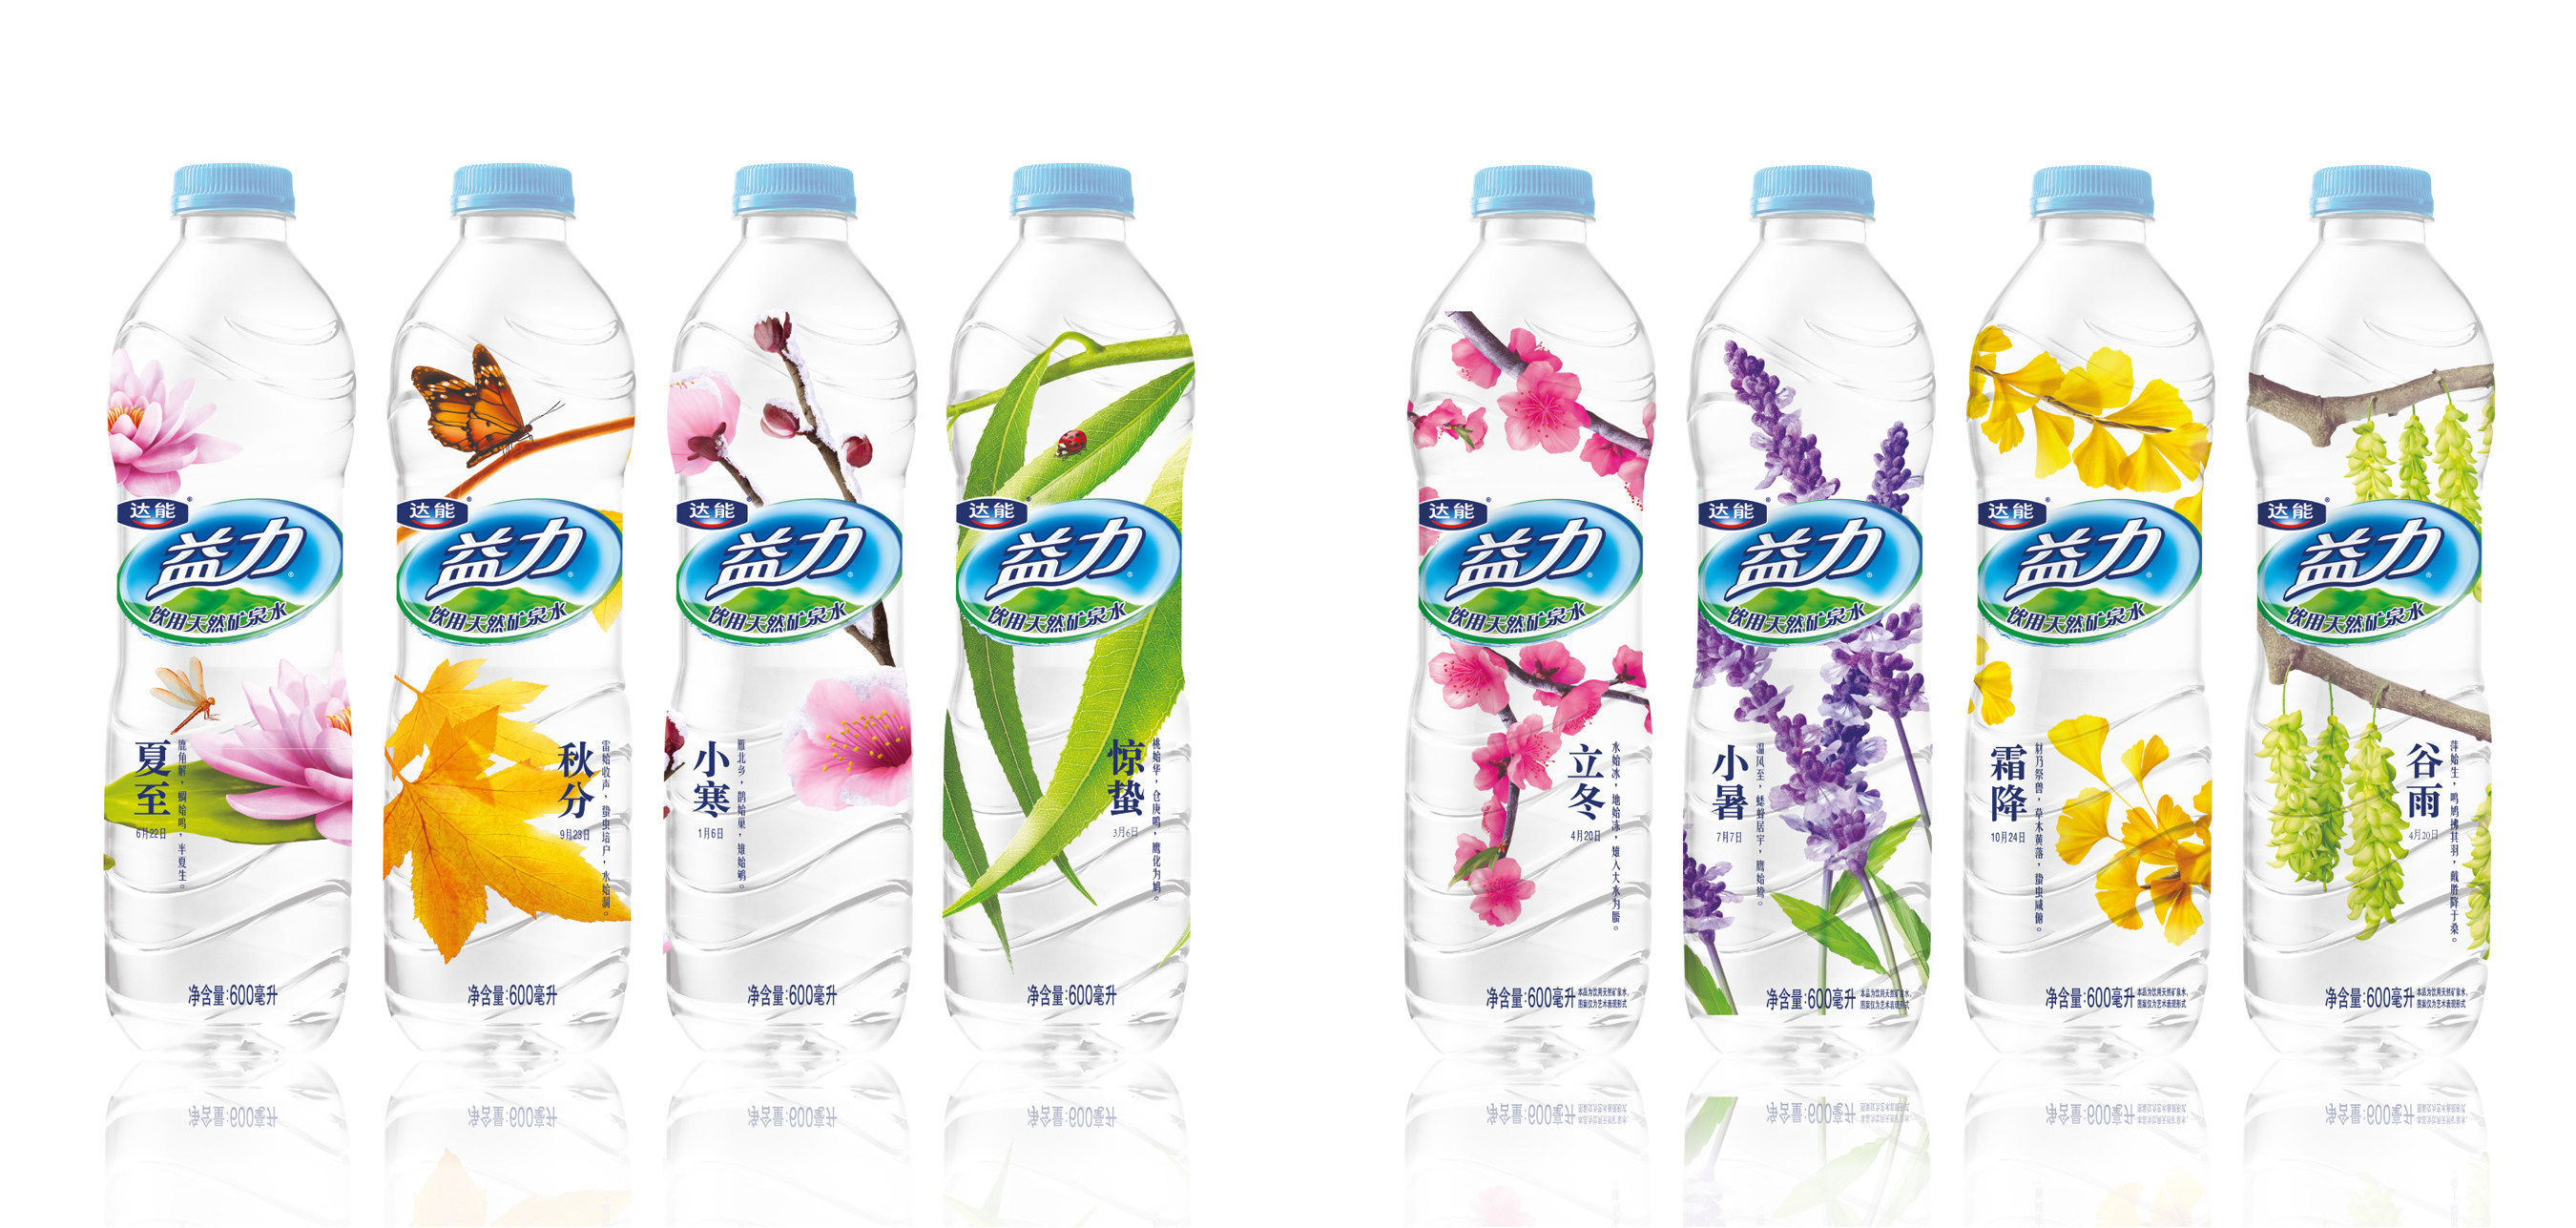 YILI Limited Edition Packaging: Feel the Nature -    Design: Brandimage (Singapore)